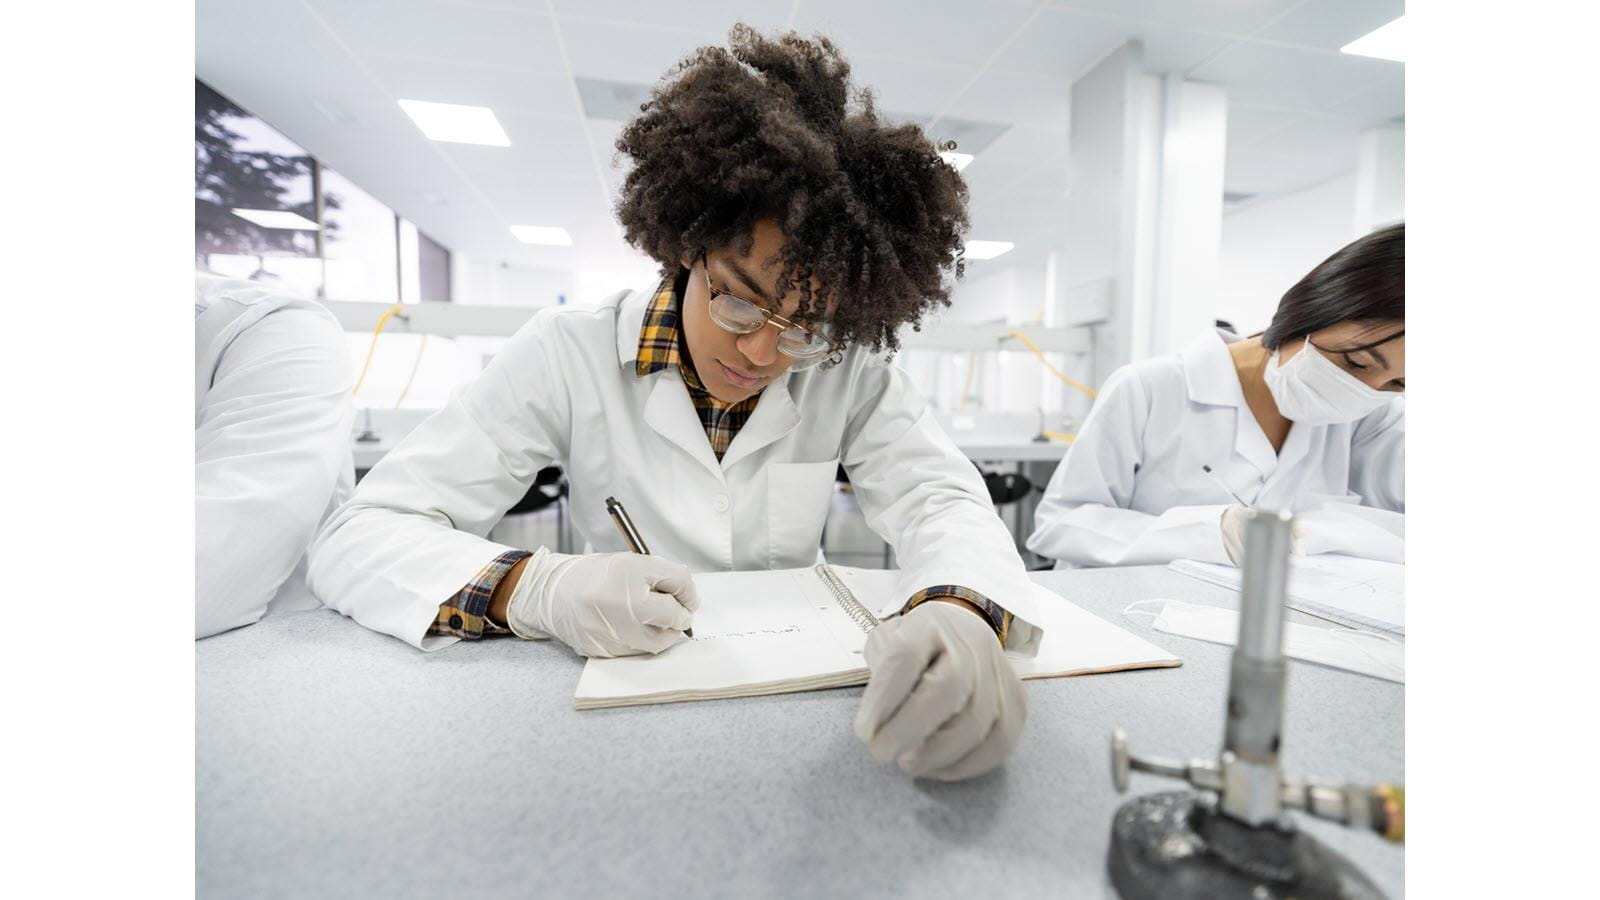 Science student taking notes with gloved hands